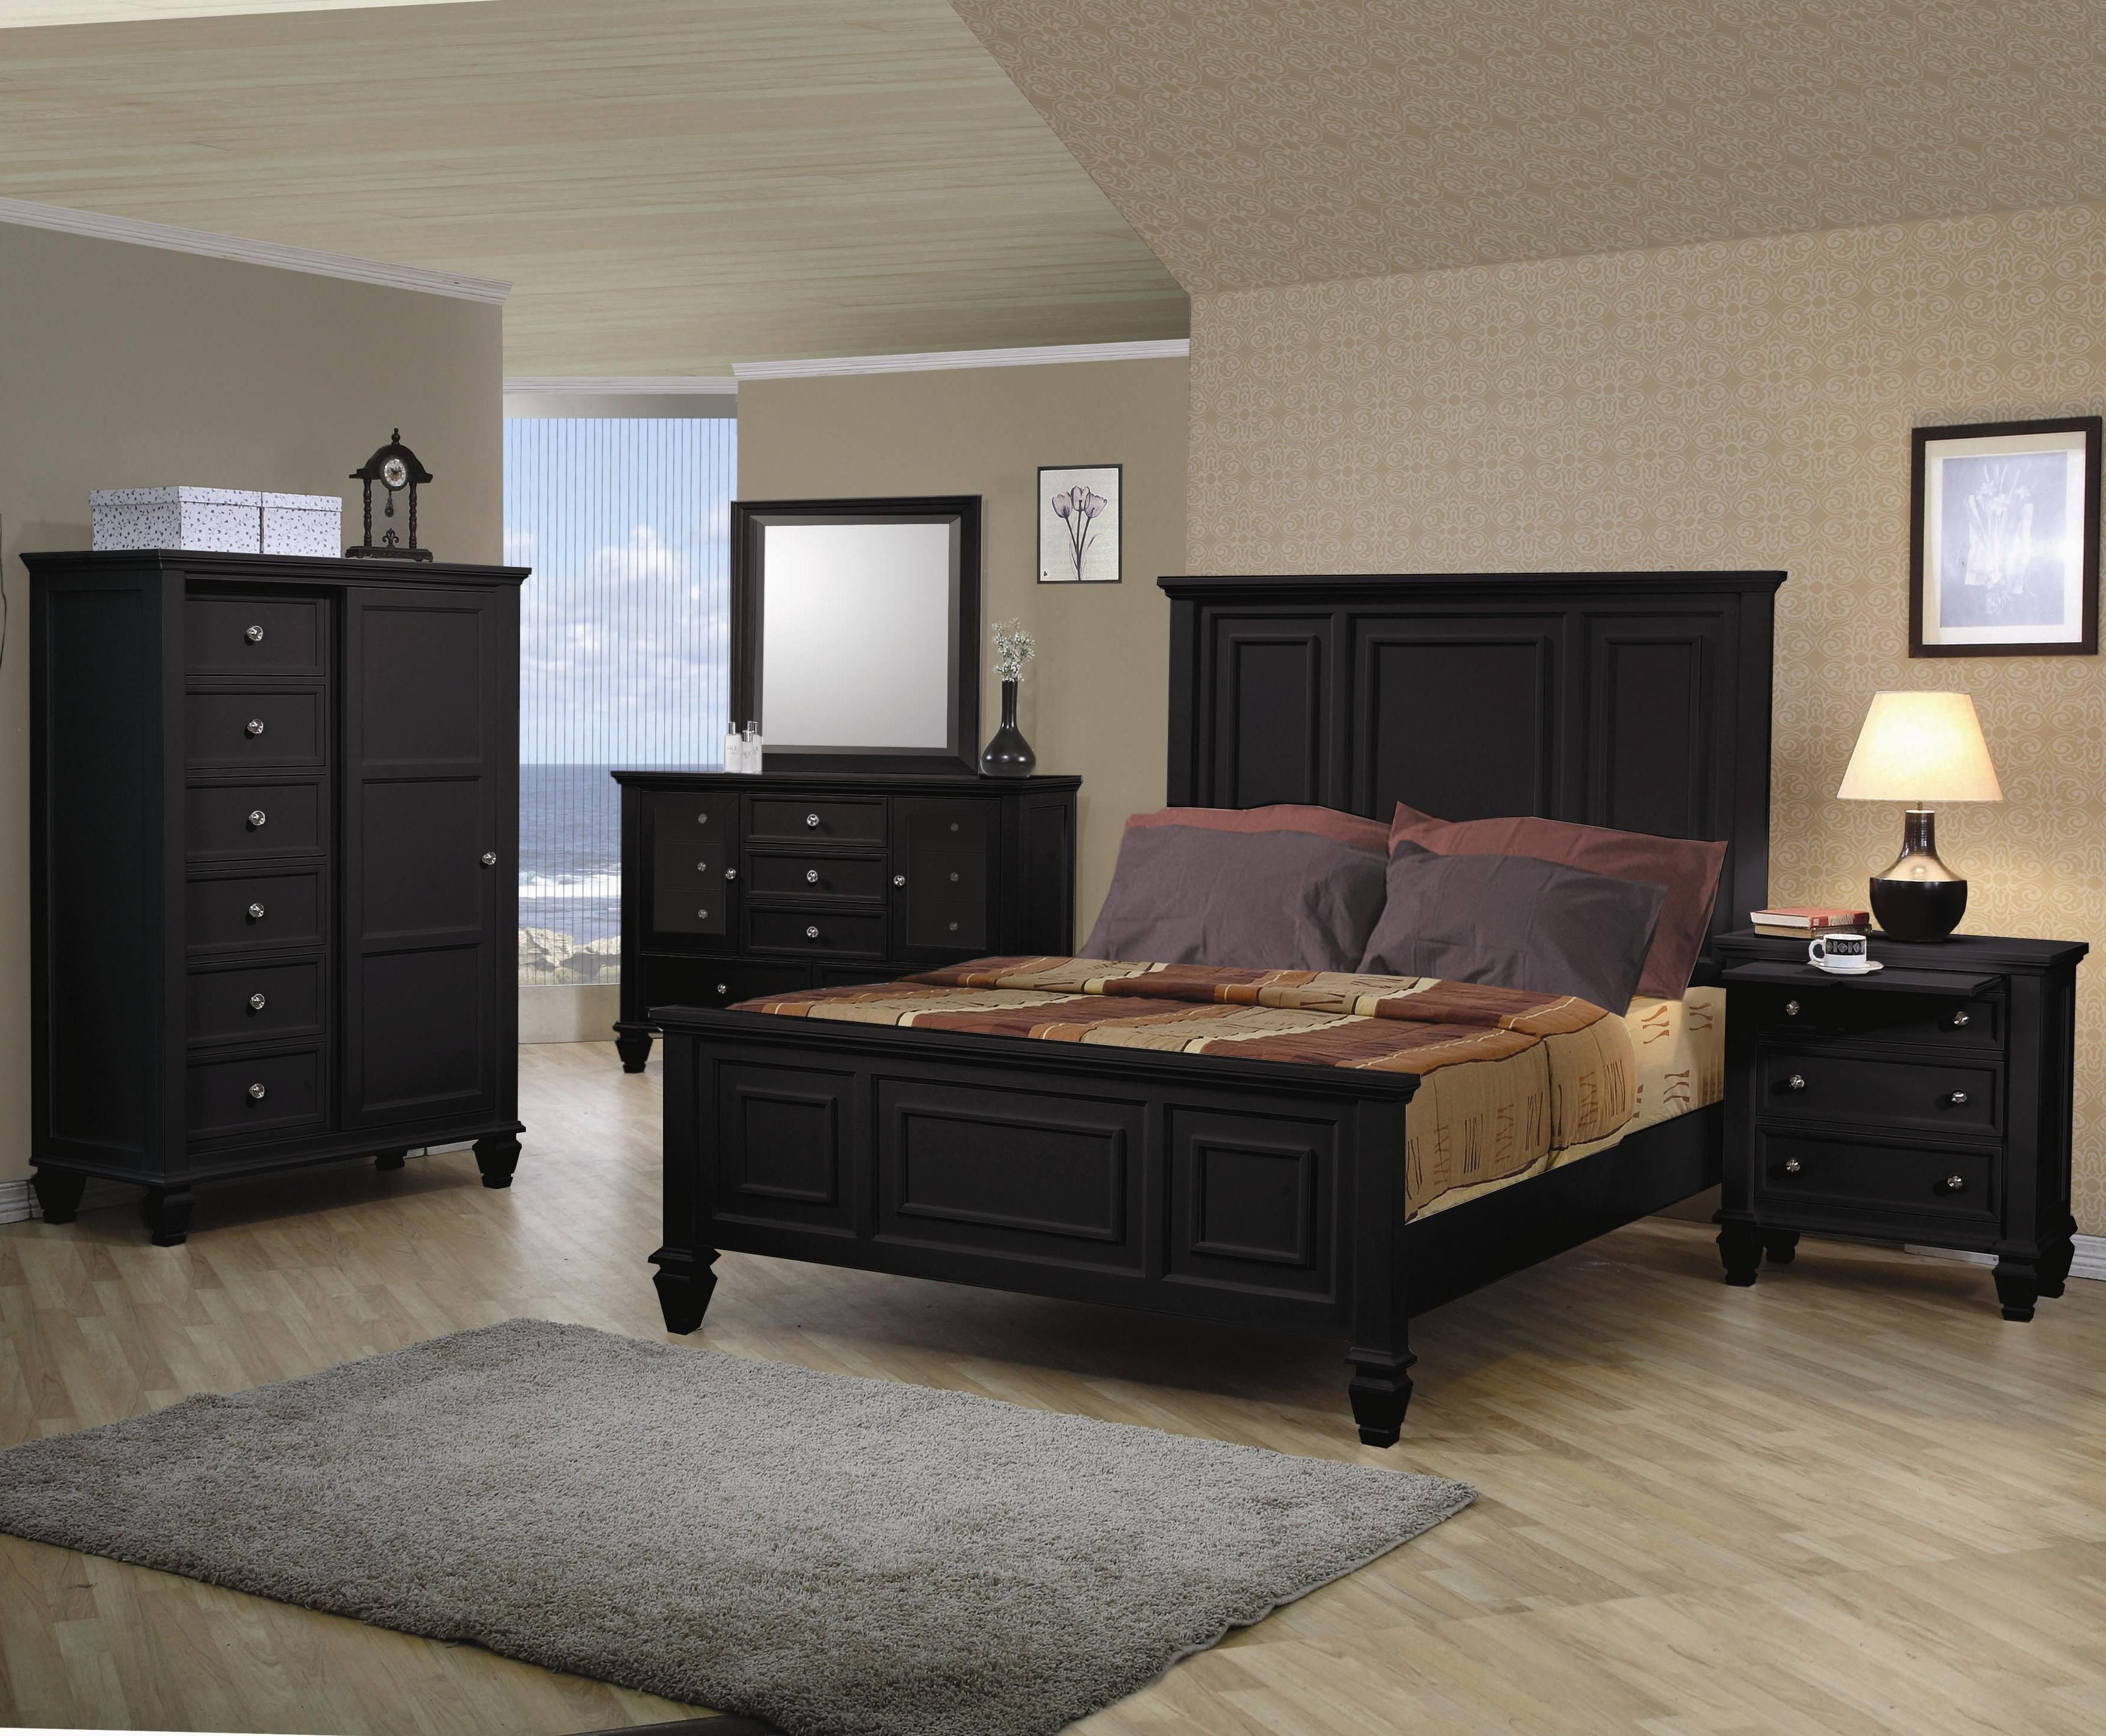 Espresso King Bedroom Set Luxury Pin On for the Bedroom